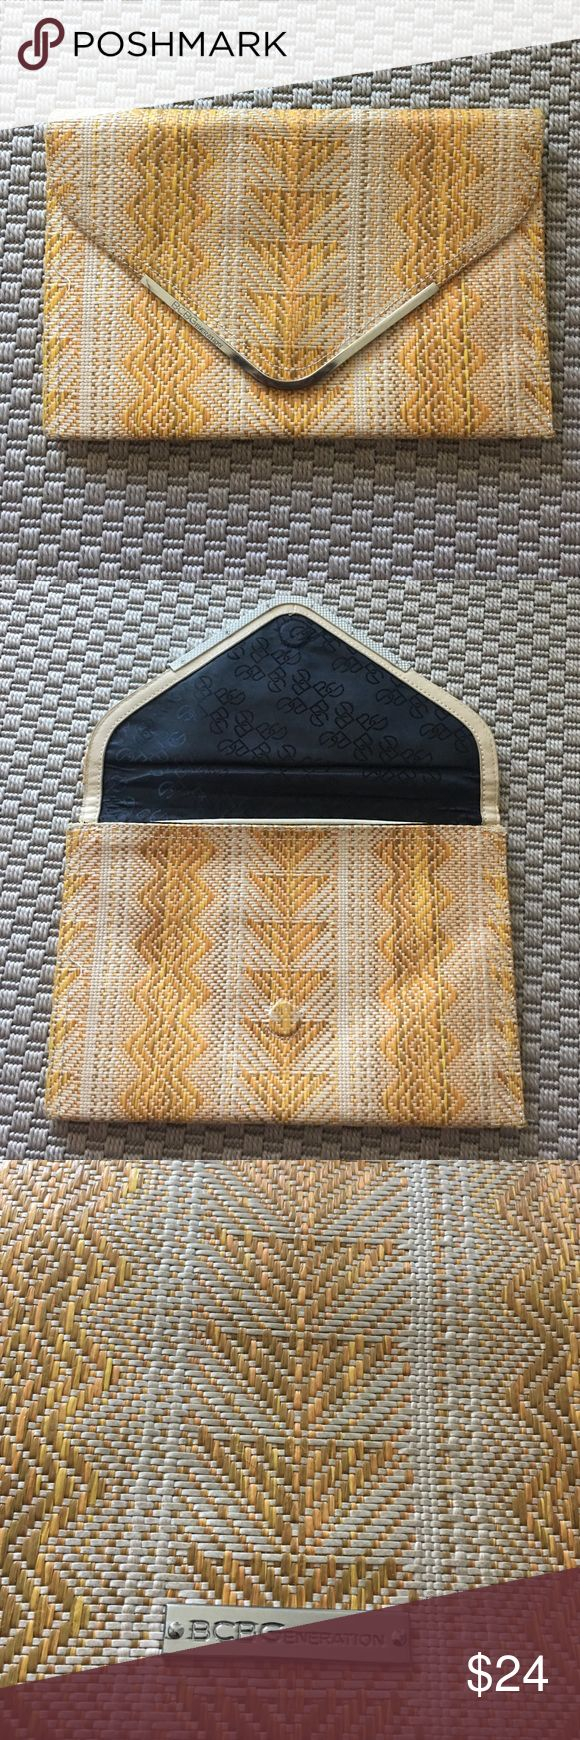 Woven envelope clutch (Khaki & Tangerine) A barely used woven envelope clutch. Perfect for vacation maxi dresses or Caribbean trips! BCBGeneration Bags Clutches & Wristlets